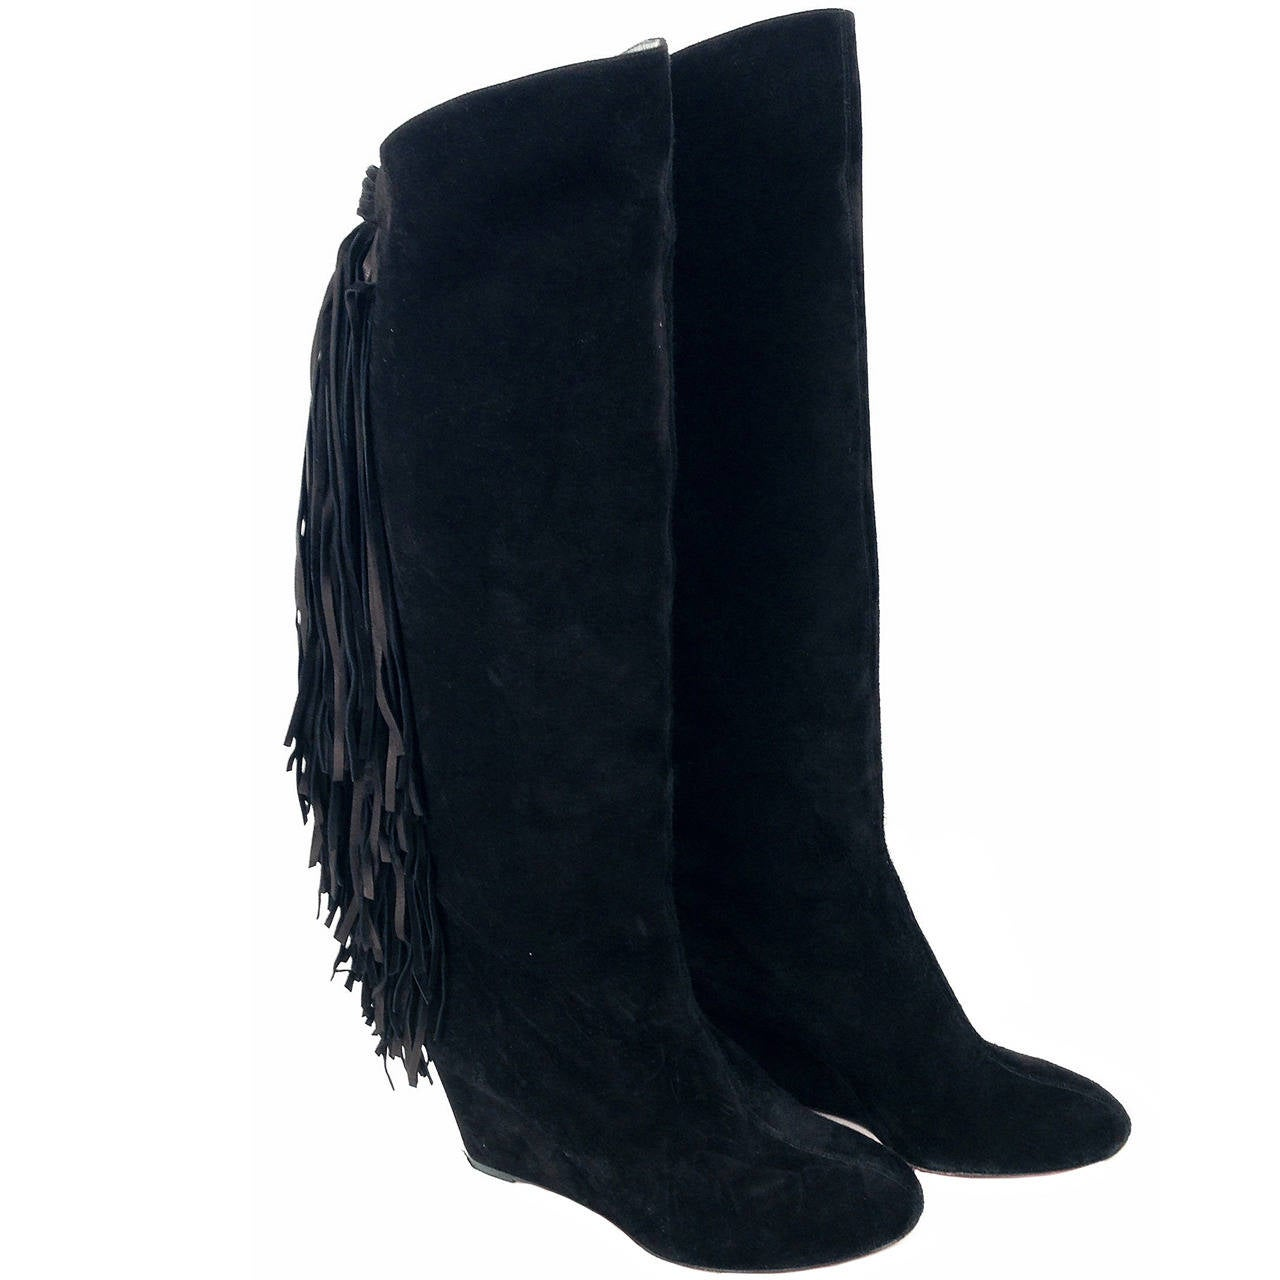 christian louboutin black suede knee boots with fringe at